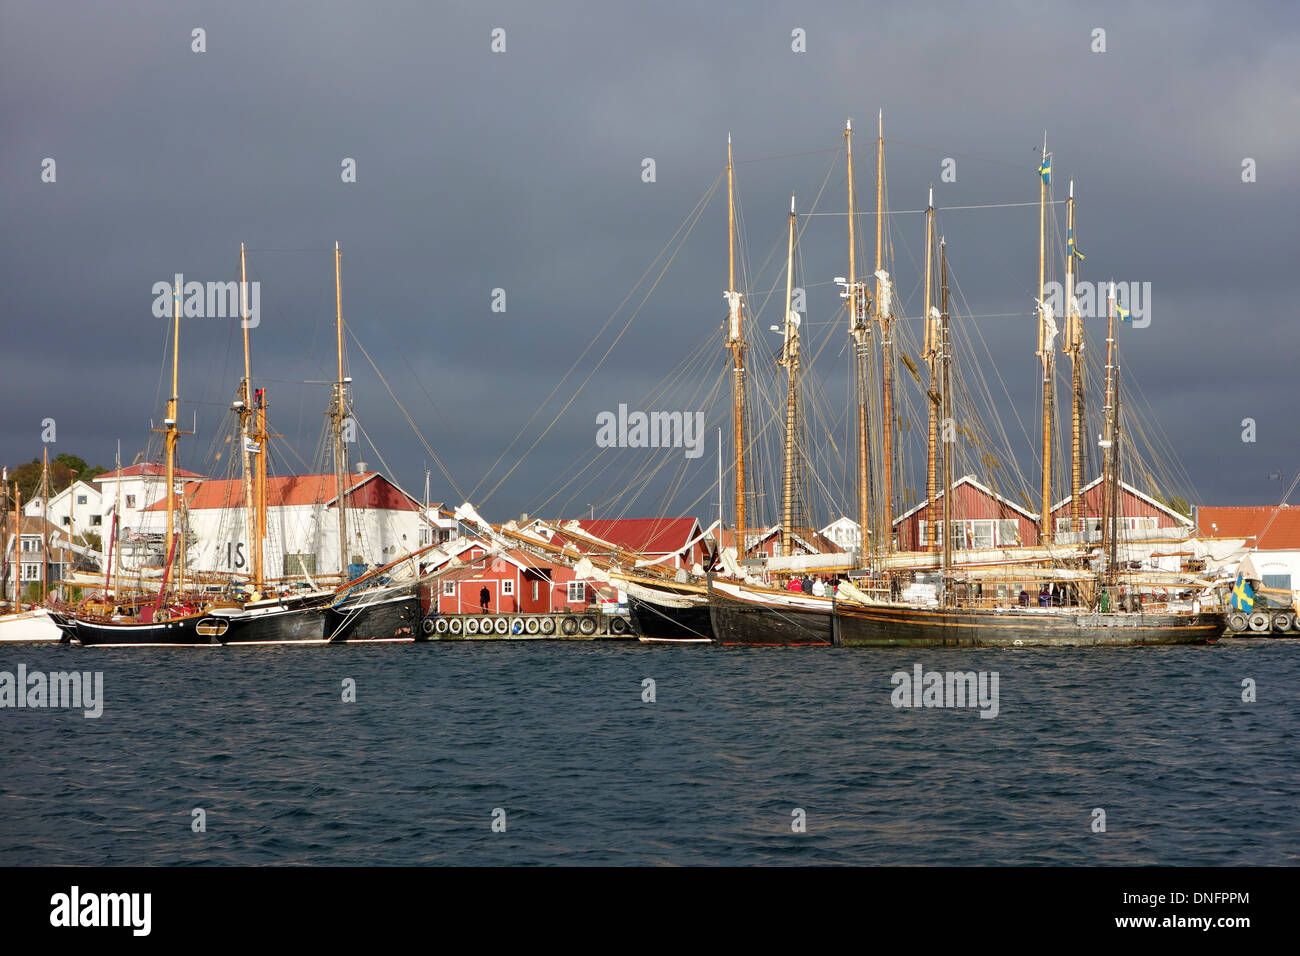 Old Wooden Sailboats In Archipelago Stock Photos Old Wooden